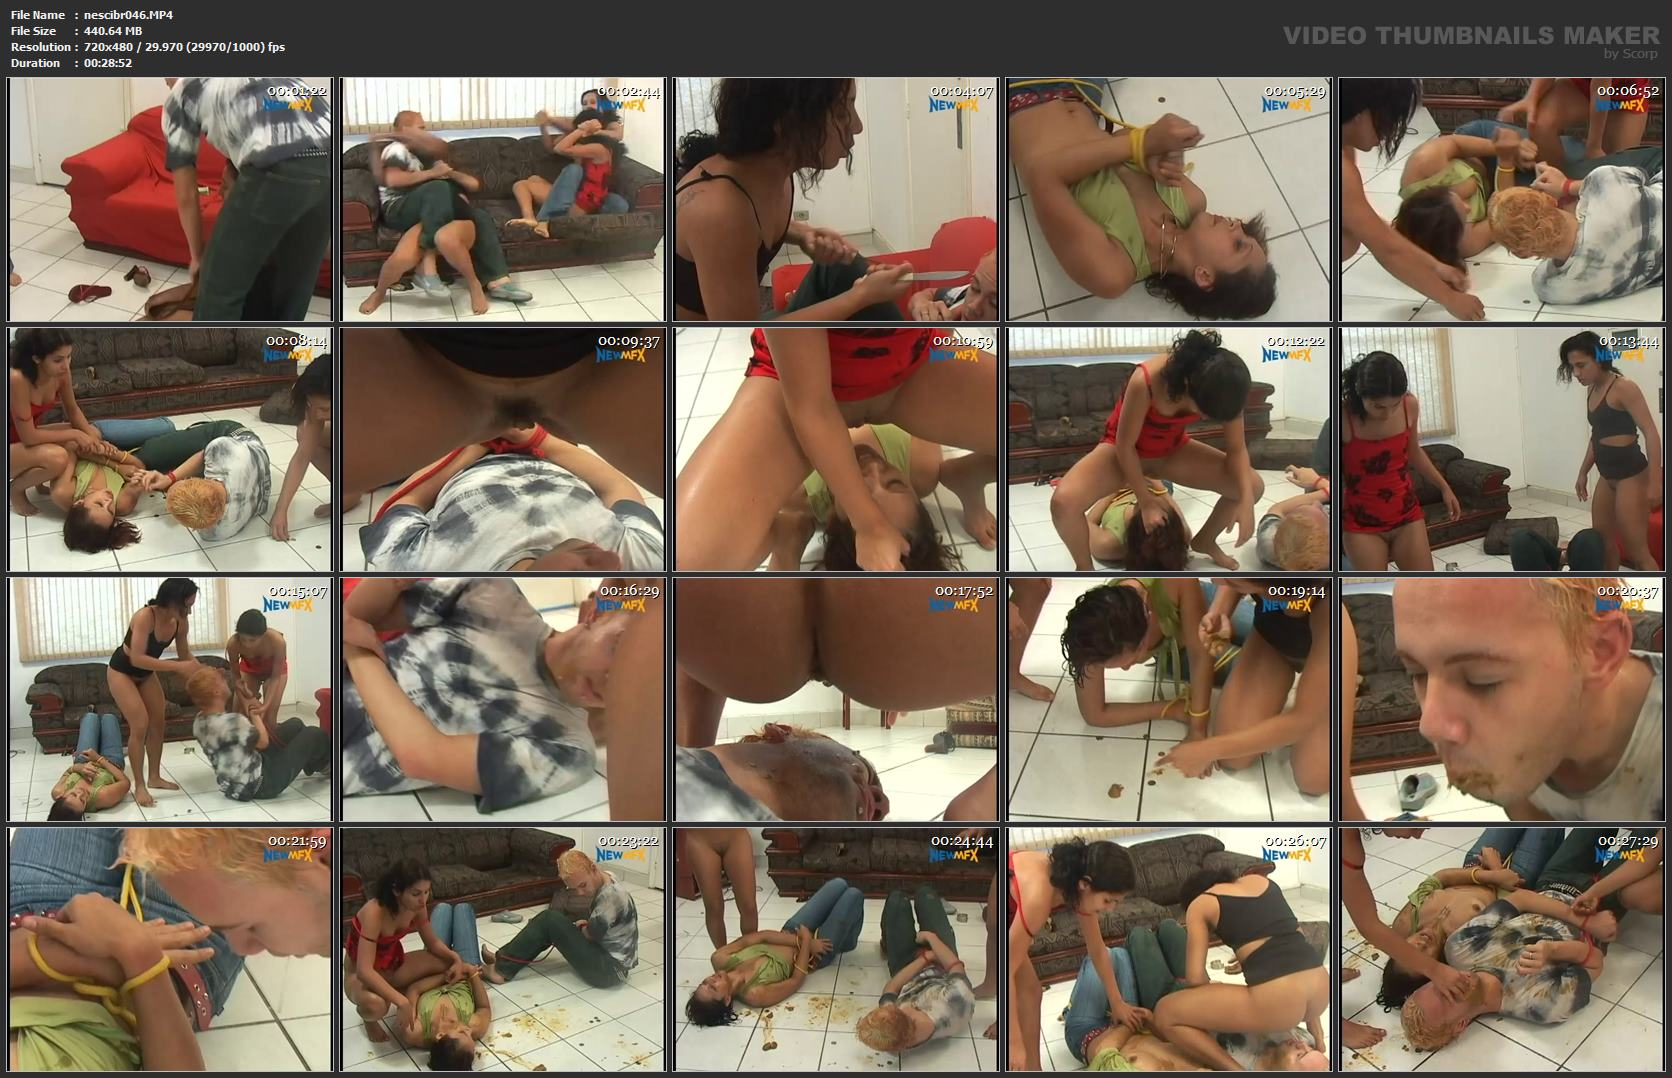 [NEW SCAT IN BRAZIL / NEWMFX] SCAT HUMILIATE MAN. Featuring: Outro [SD][480p][MP4]